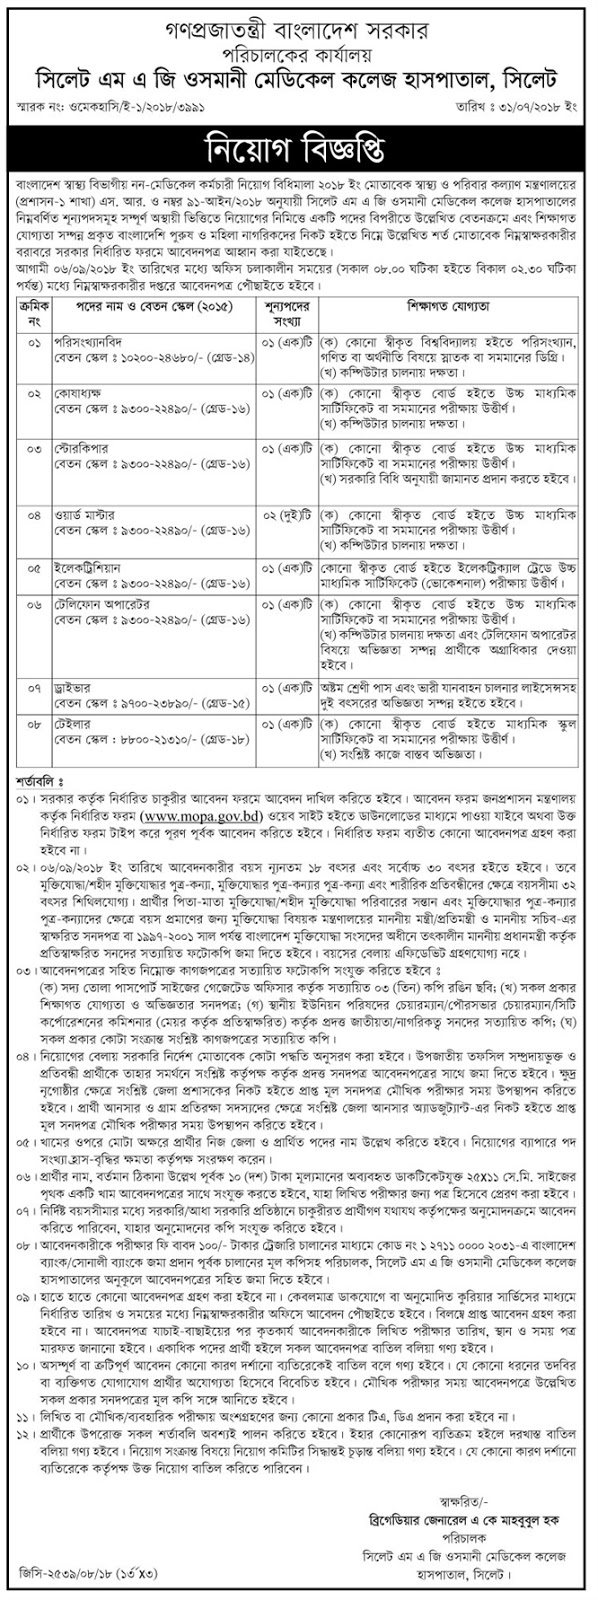 Sylhet MAG Osmani Medical College Job Circular 2018